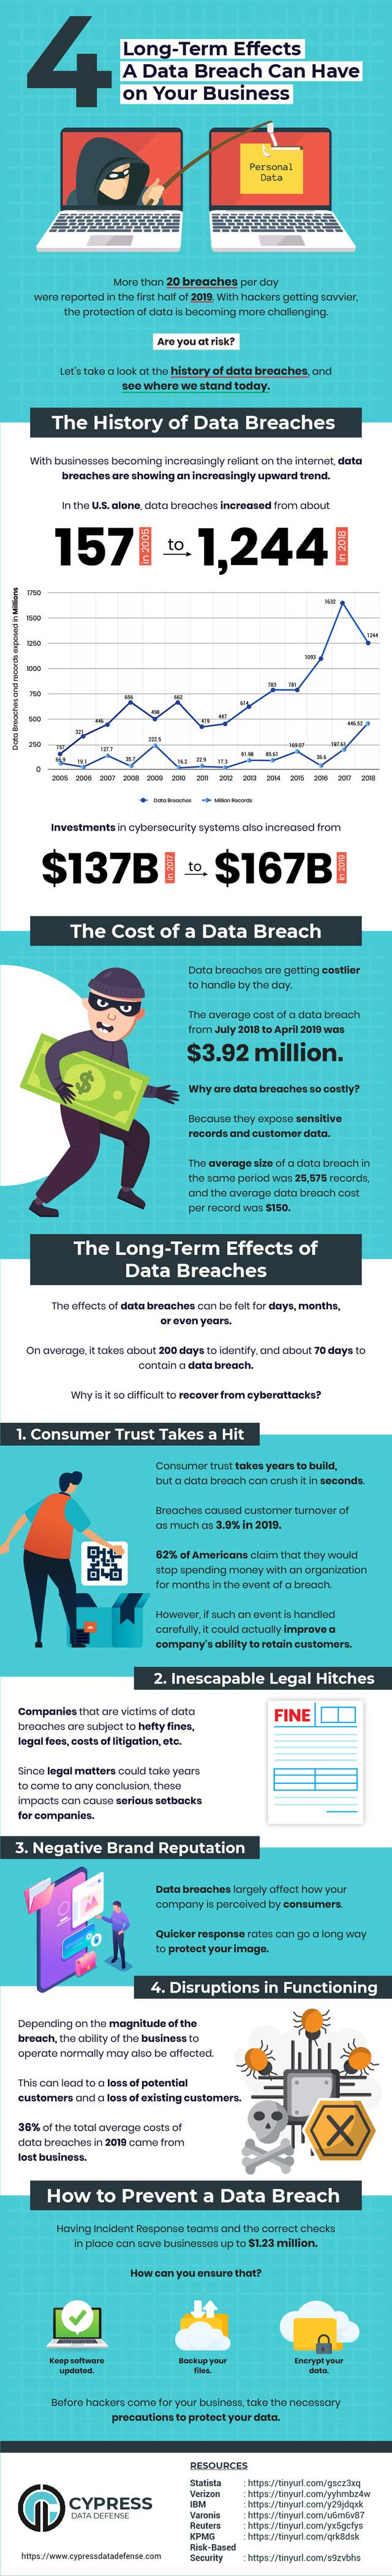 4-Long-Term-Effects-A-Data-Breach-Can-Have-On-Your-Business